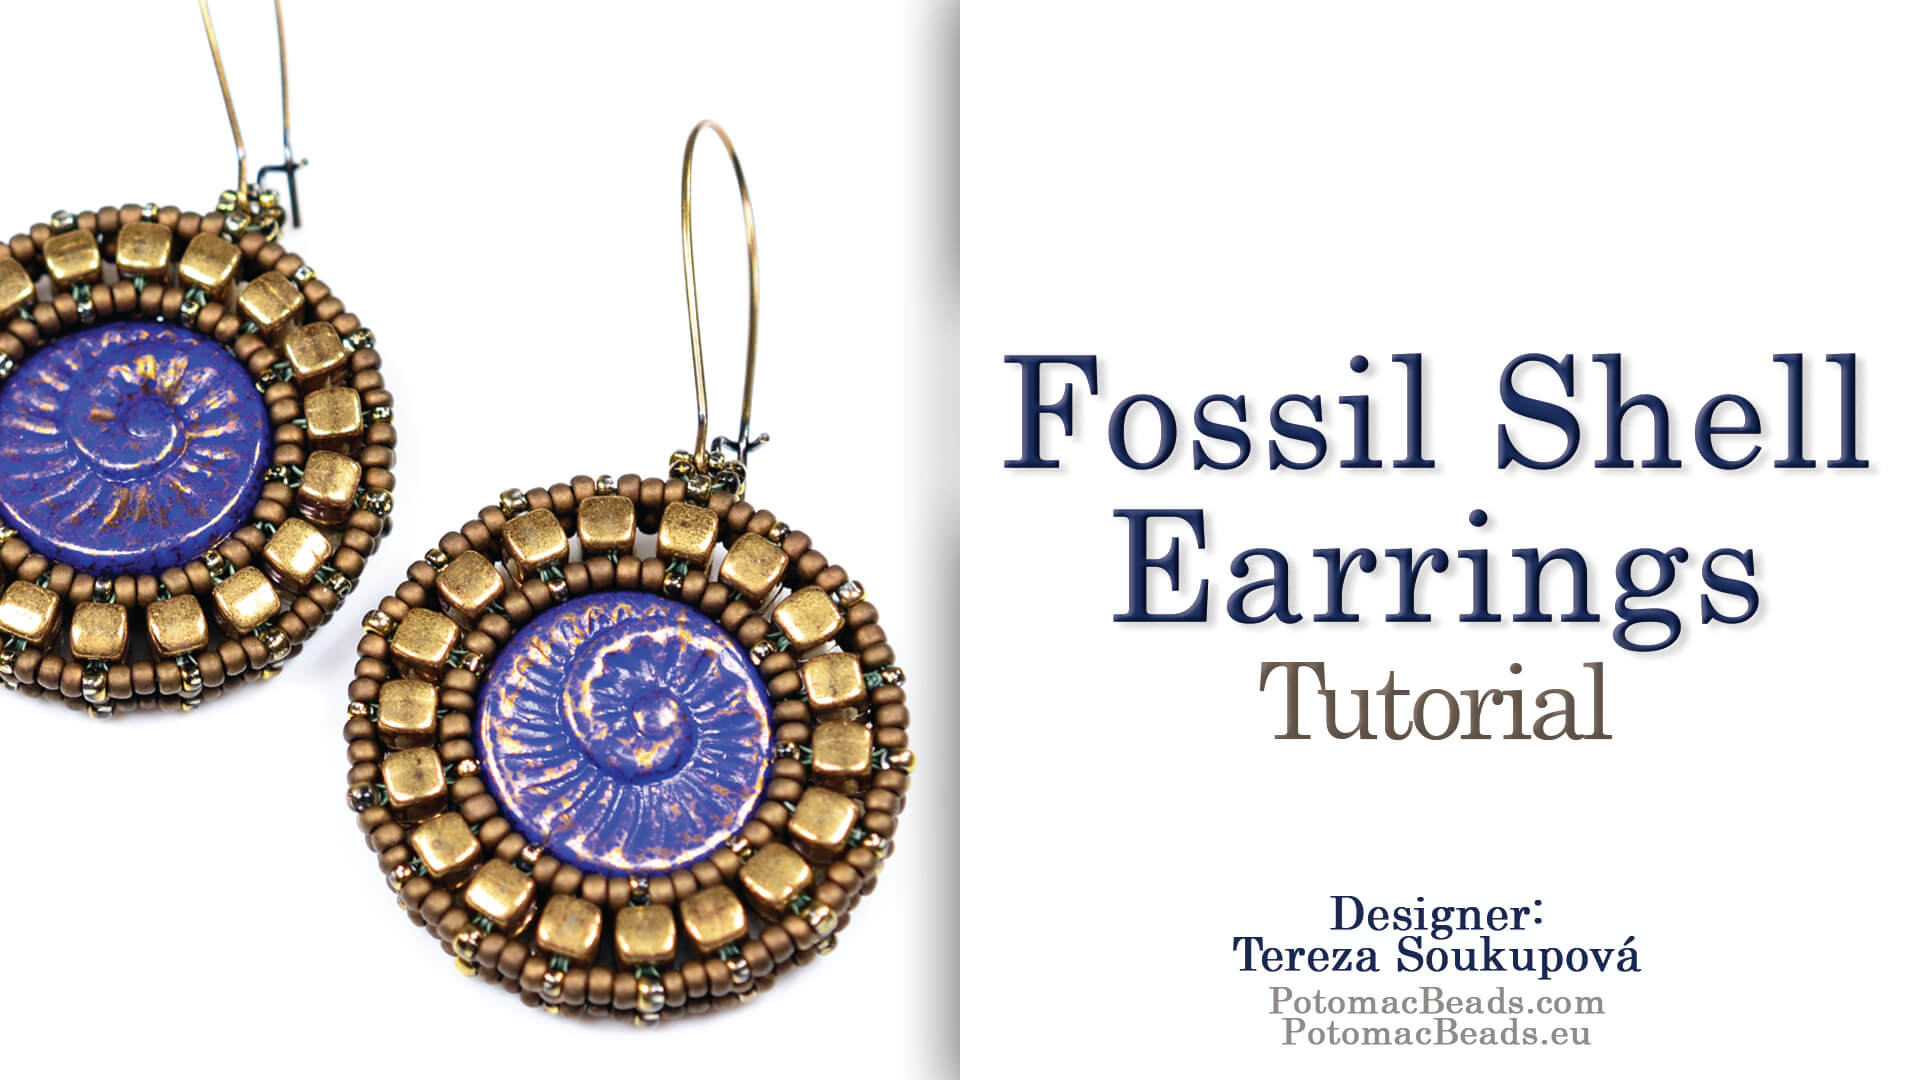 How to Bead / Videos Sorted by Beads / All Other Bead Videos / Fossil Shell Earrings Tutorial